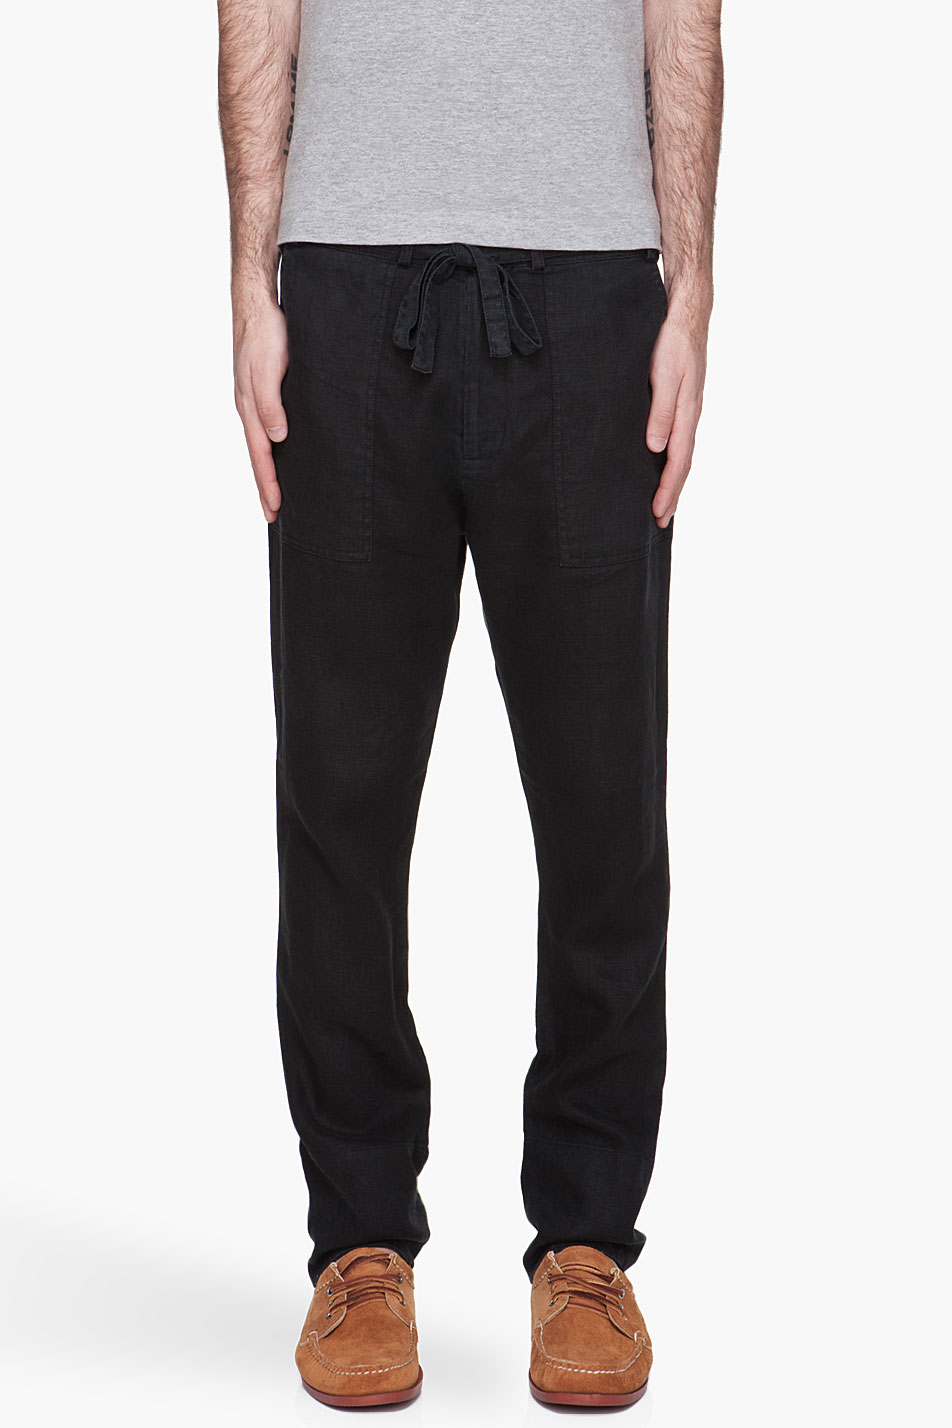 Drawstring Pants Linen Black Black Linen Drawstring Pants